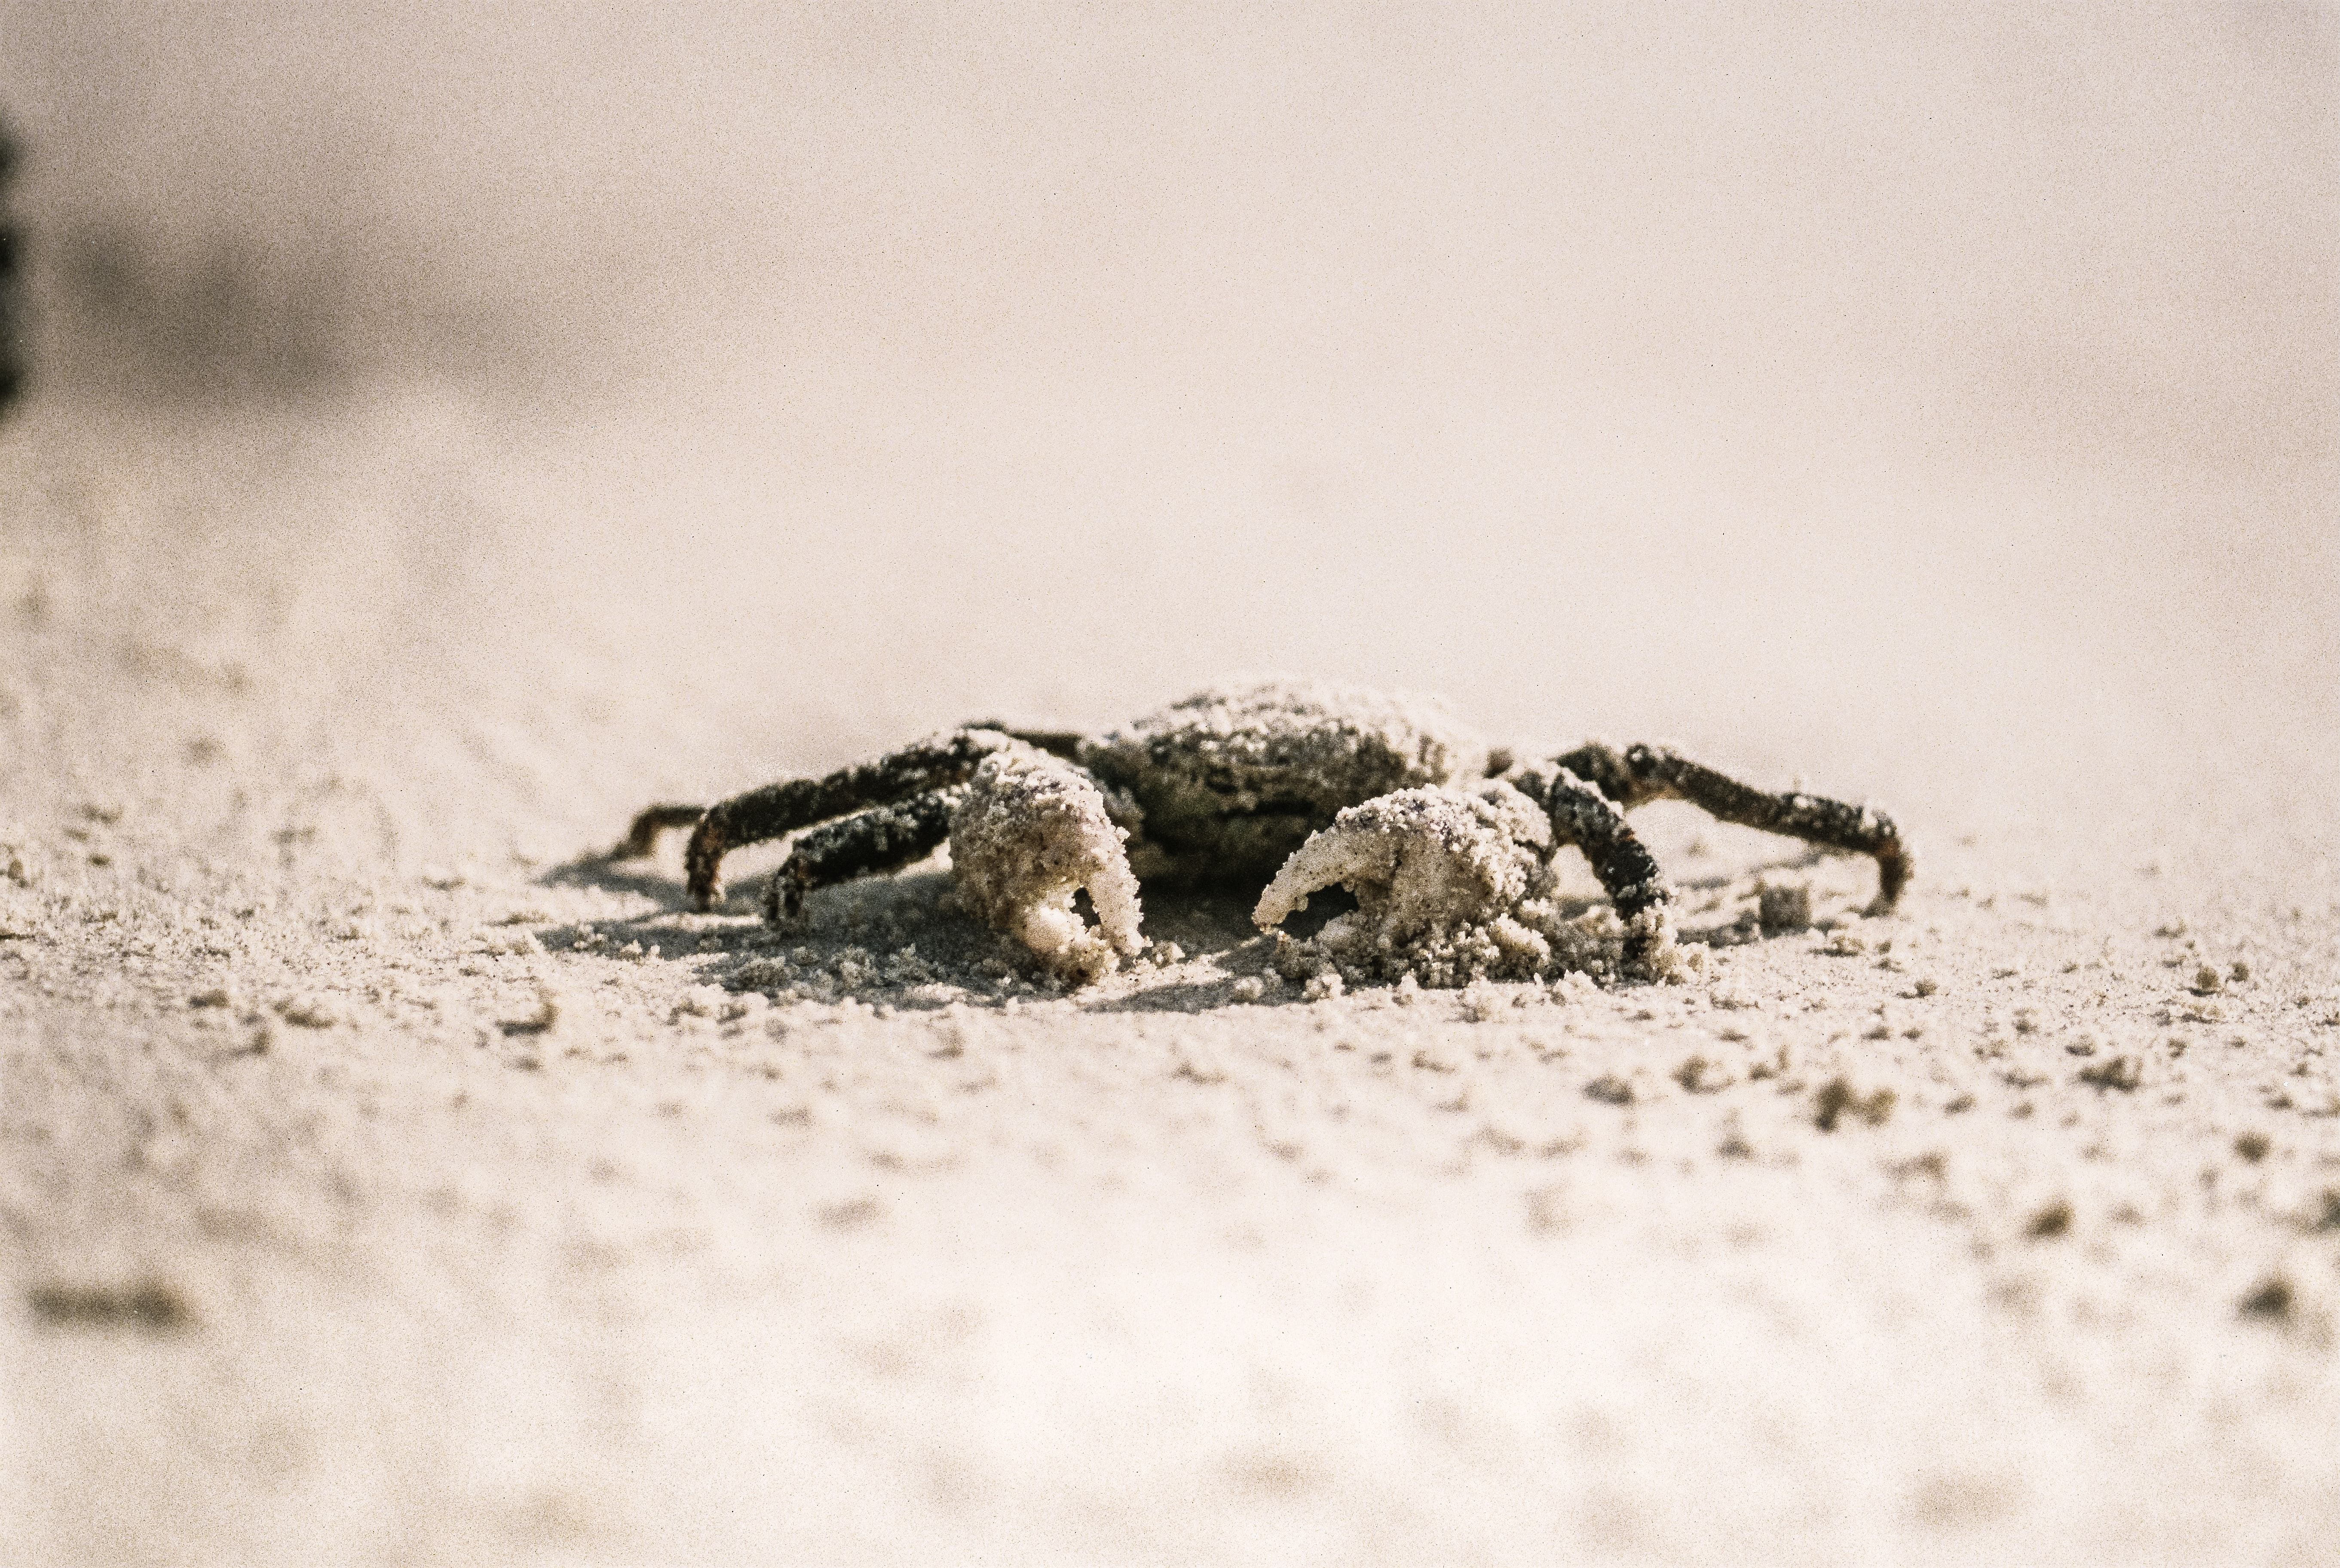 selective focus photography of crab on white sand